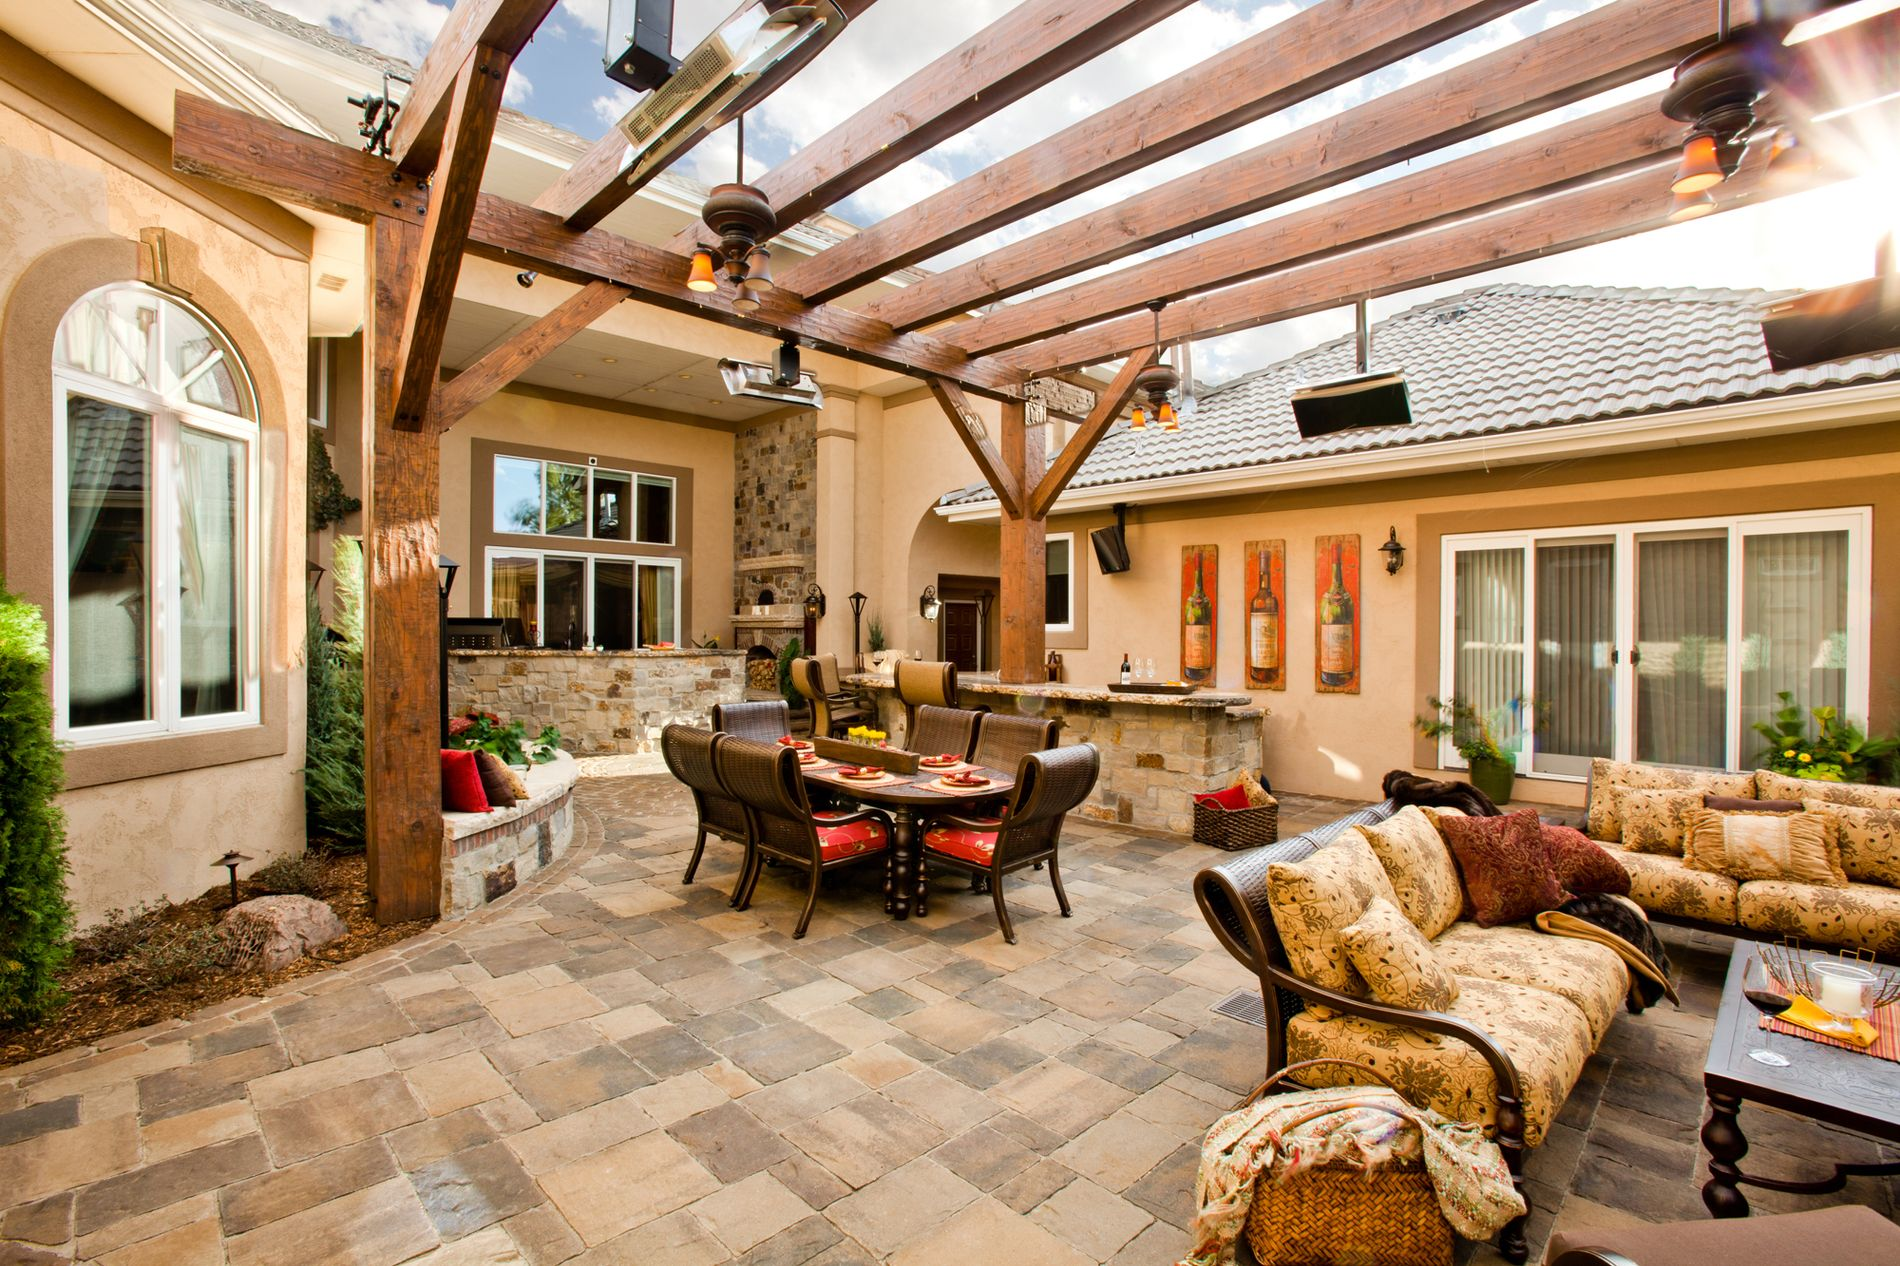 Paver courtyard with pergola covering outdoor living space